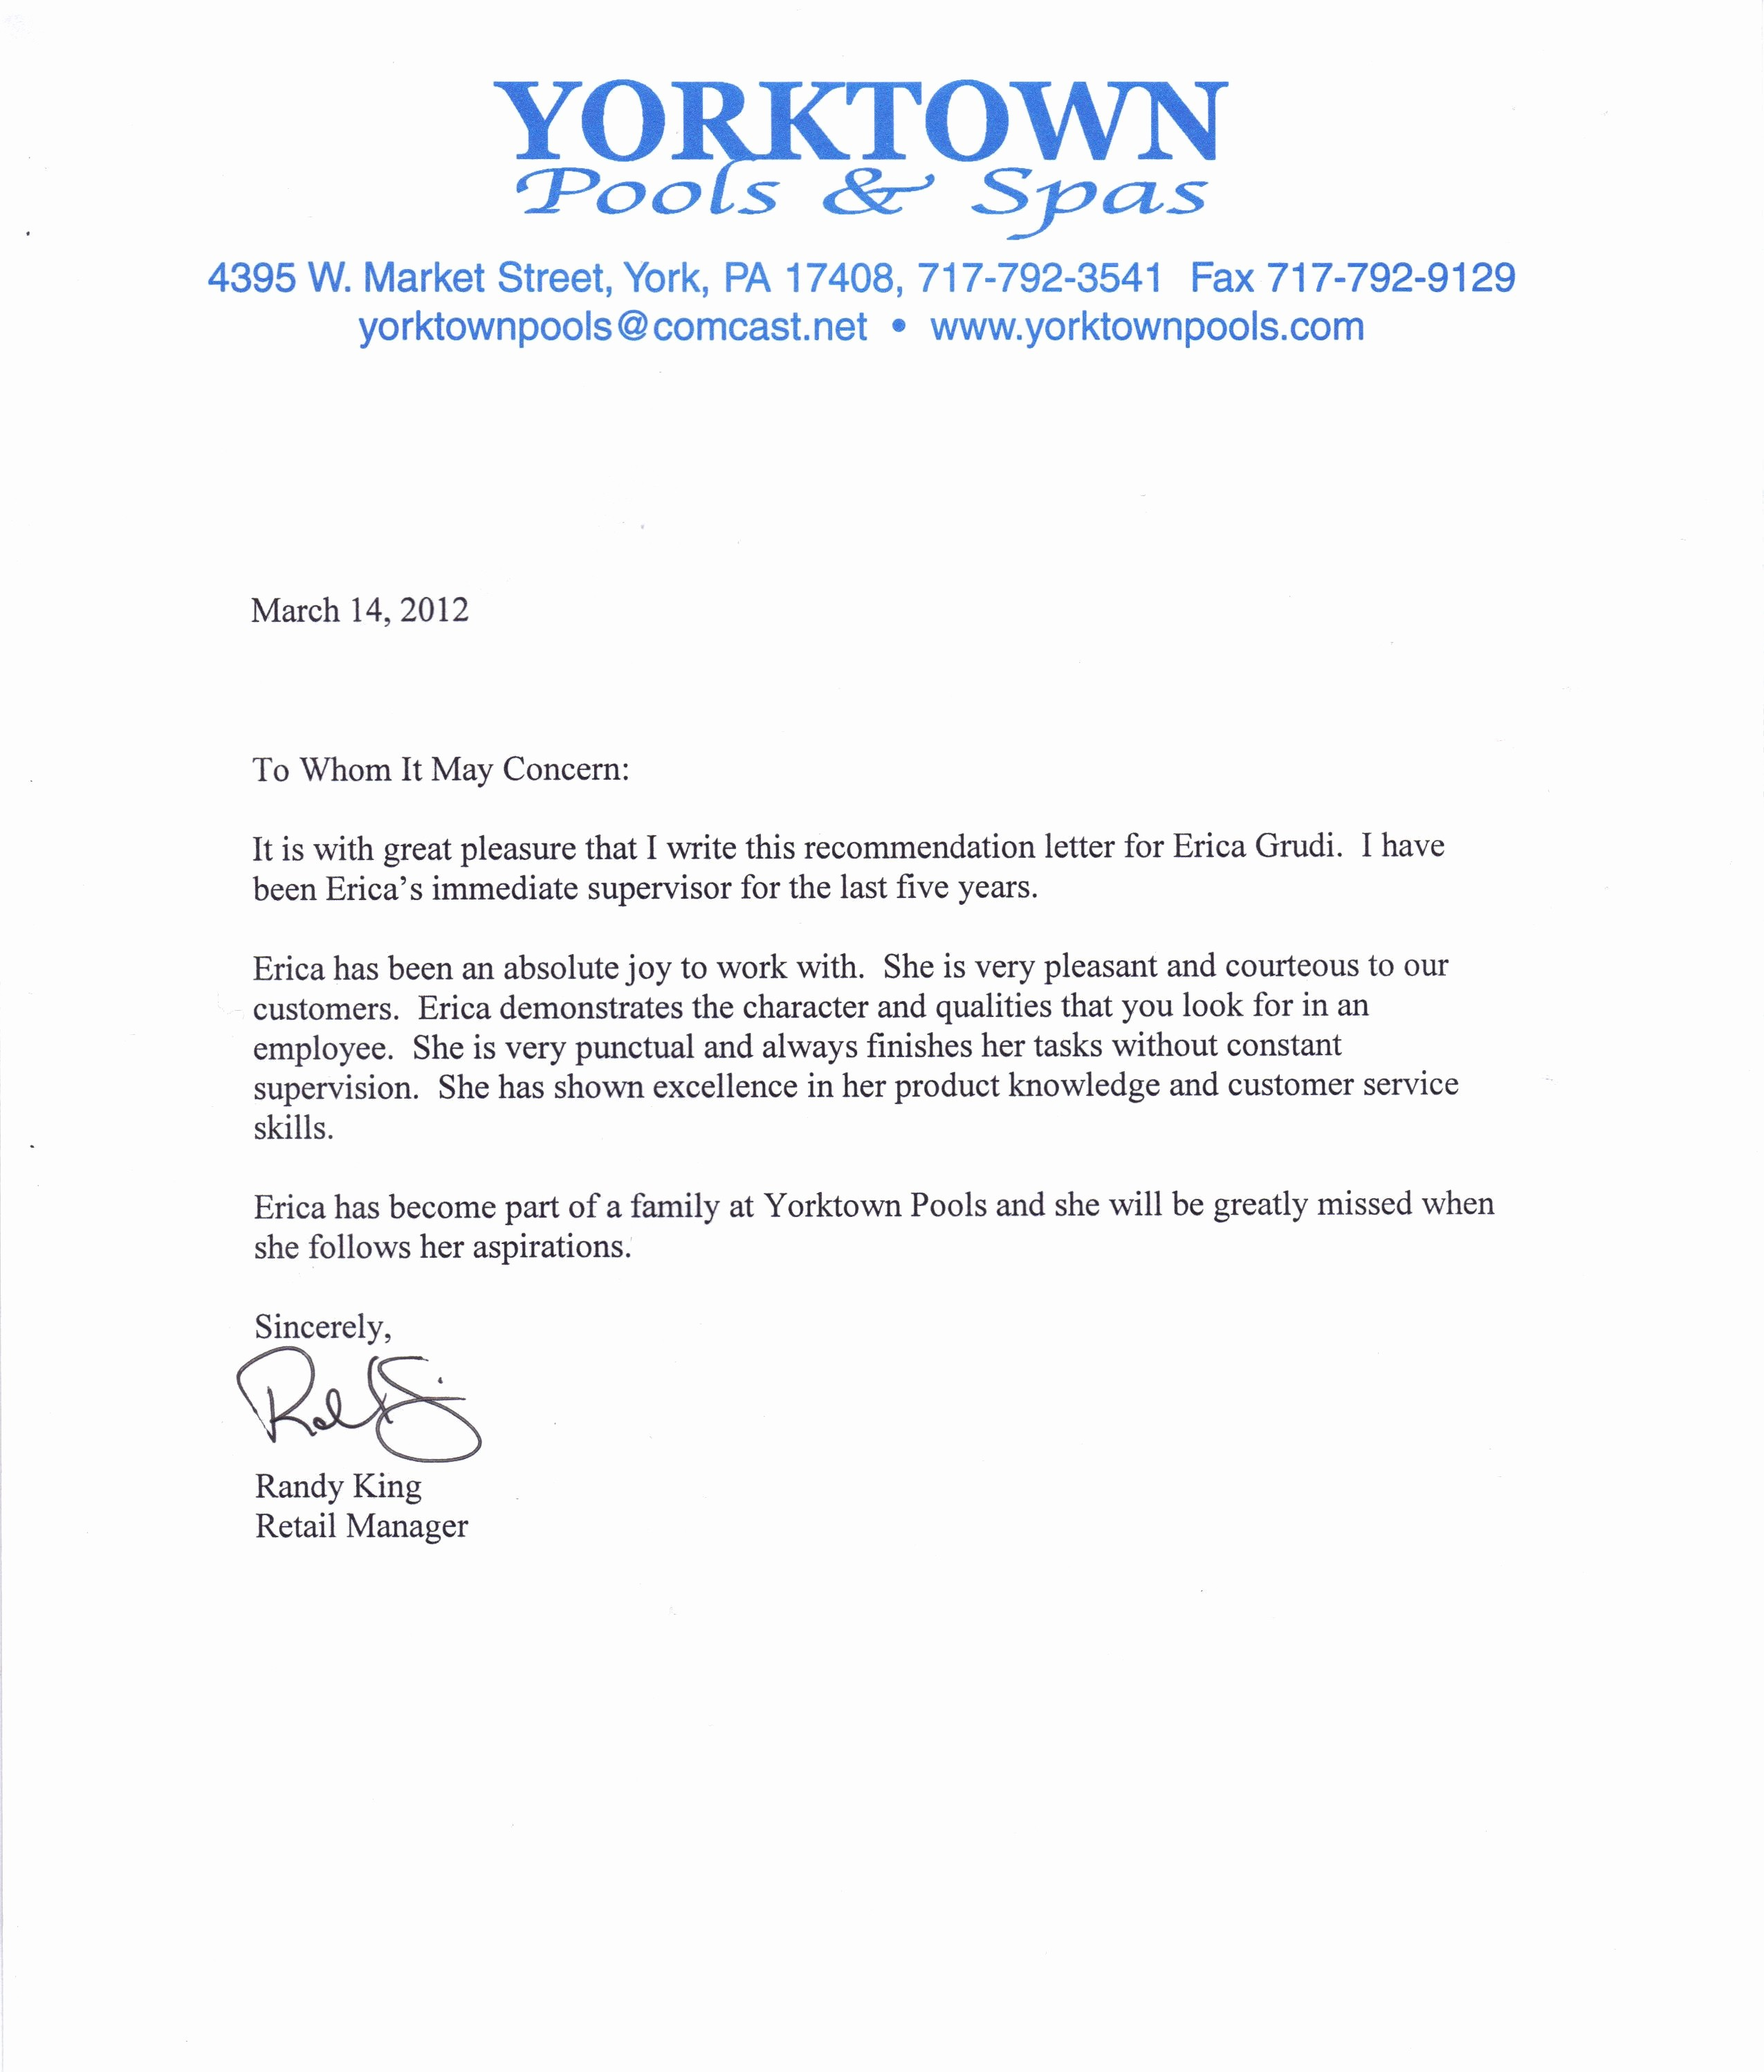 Formal Letter Of Recommendation Template Luxury Letters Re Mendationletter Re Mendation formal